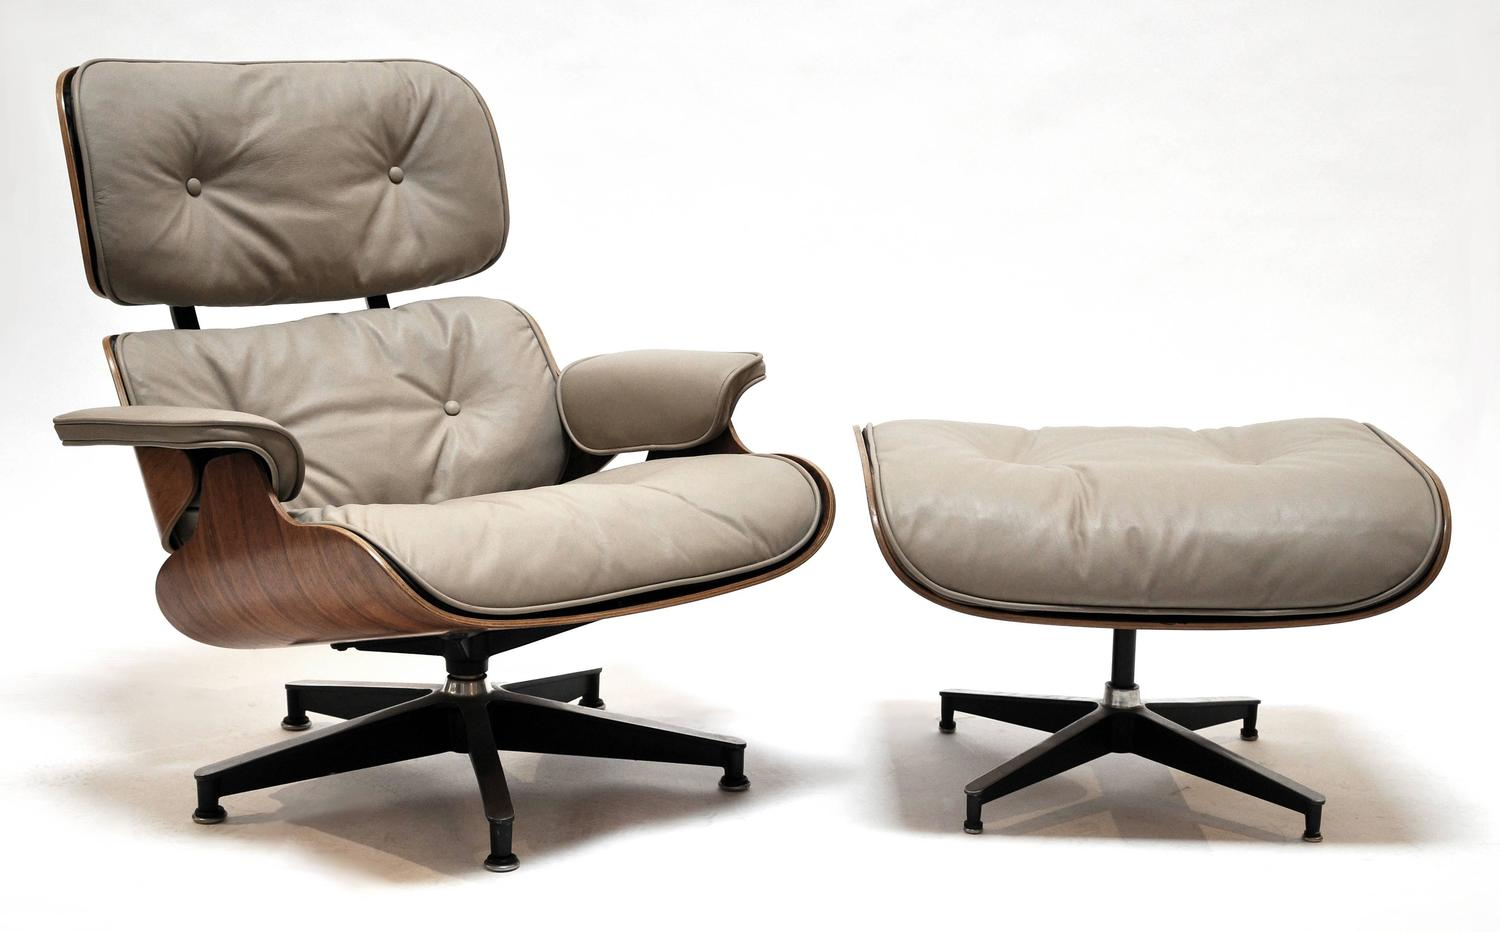 Herman Miller Eames Chairs Eames Lounge Chair And Ottoman Herman Miller At 1stdibs